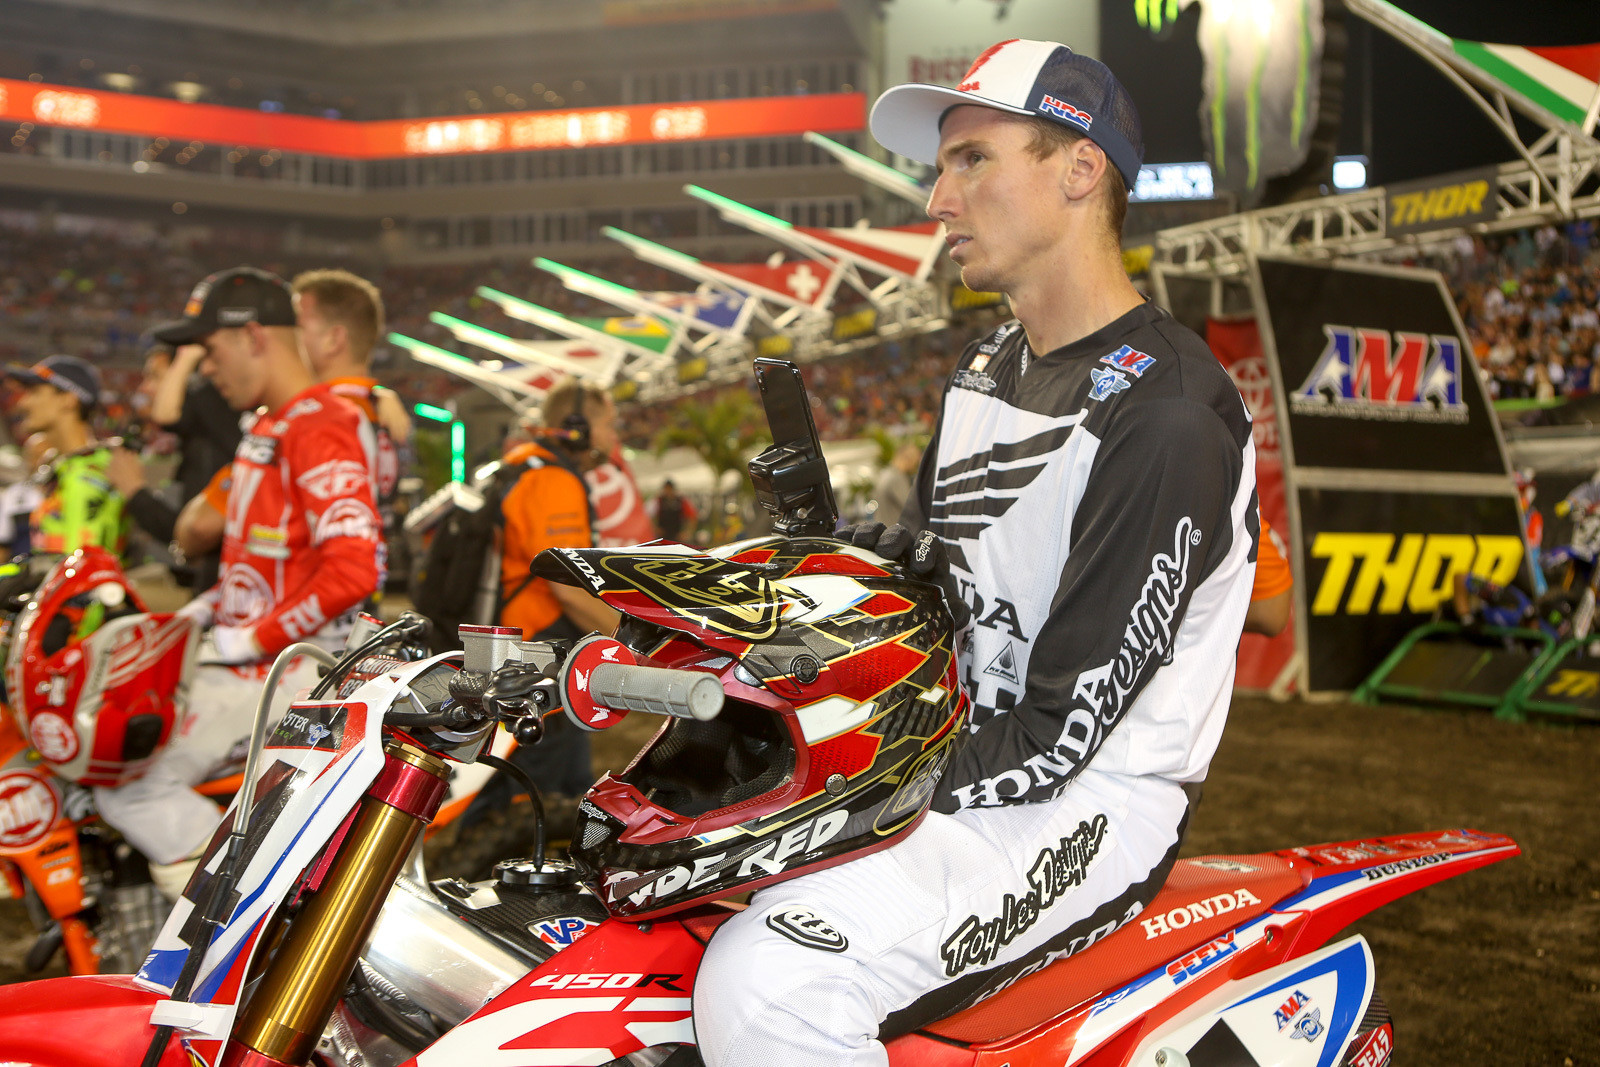 The last few weeks have been brutal on the 450 competitors. Weimer, Barcia, Roczen, Grant, Ray, were among the guys hurt before Tampa, and there we added Cole Seely to the list. His pelvis and tailbone injuries have already resulted in a surgery, and there's no doubt he'll be out for a while. He was doing some livestreaming (see the phone on his helmet) before the start of the night's action. What's the solution for making things safer? That's the million dollar question. Everyone knows this is dangerous. The fact that this is inherently dangerous is usually the first thing that's mentioned at the start of every rider's meeting. You may not hear it from everyone, but in conversations around the pits some folks suggest that 450s are too powerful for the stadiums. Others will mention track design. Some say the every weekend schedule doesn't help. One thing you can rest assured on is that everyone (including the promoters) would love to find a way to keep the riders healthy.